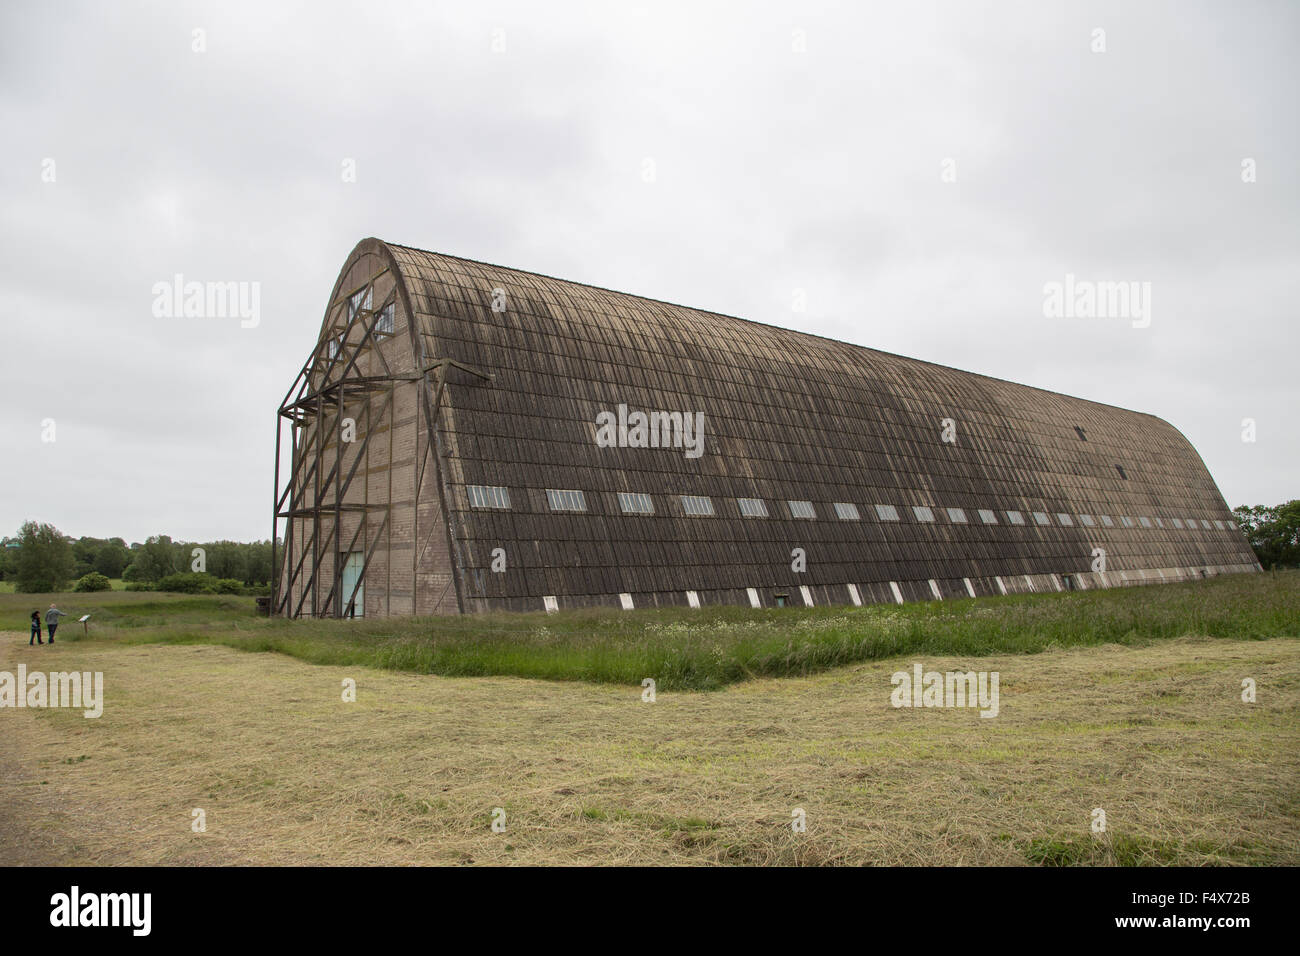 WW1 and WW2 Ecausseville Aerobase Air Balloon Museum Hanger Hangar     WW1 and WW2 Ecausseville Aerobase Air Balloon Museum Hanger Hangar in  Ecausseville  Normandy France